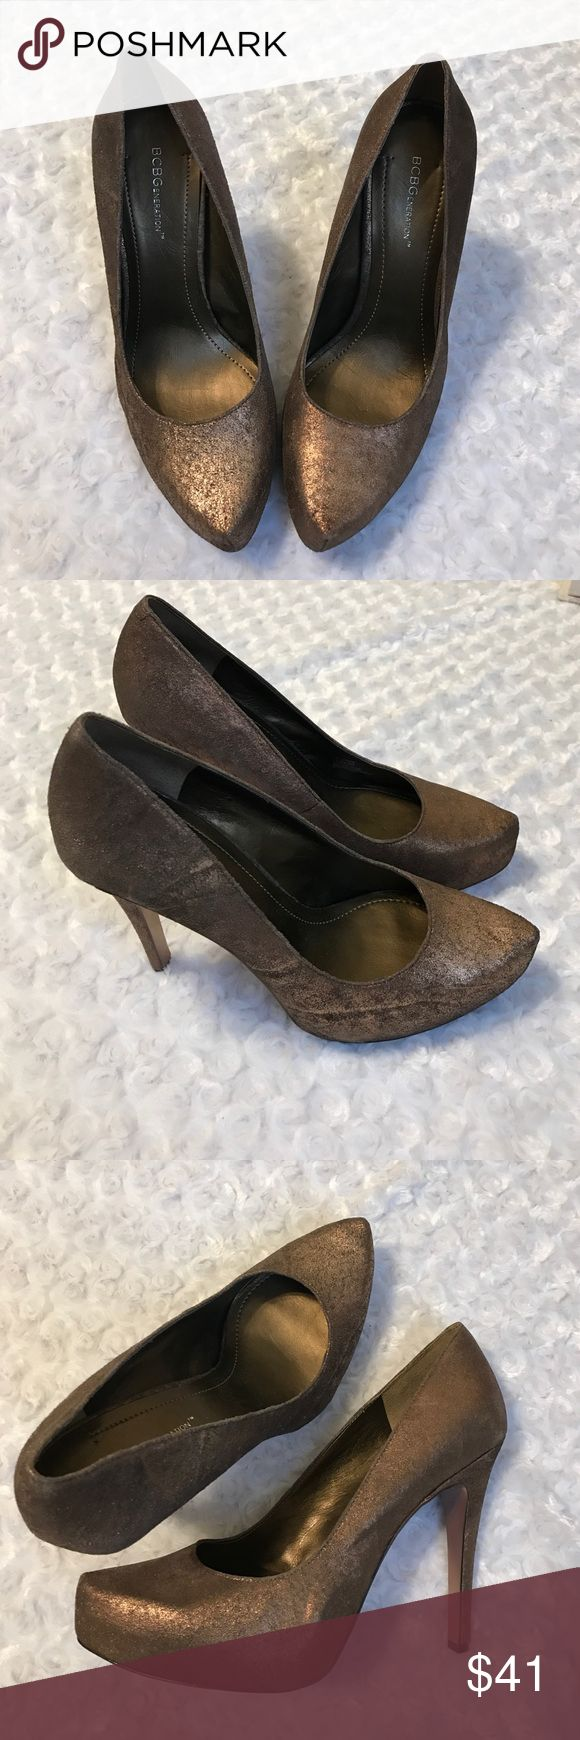 """BCBGeneration BRONZE ASH LEATHER HEELS STILETTOS GORGEOUS bronze shoes with an almond toe. Genuine leather. Has a slight shimmer to them and tones of grey. Party ready!! 5"""" heel 1.5"""" platform. -No trades. NWOT BCBGeneration Shoes"""